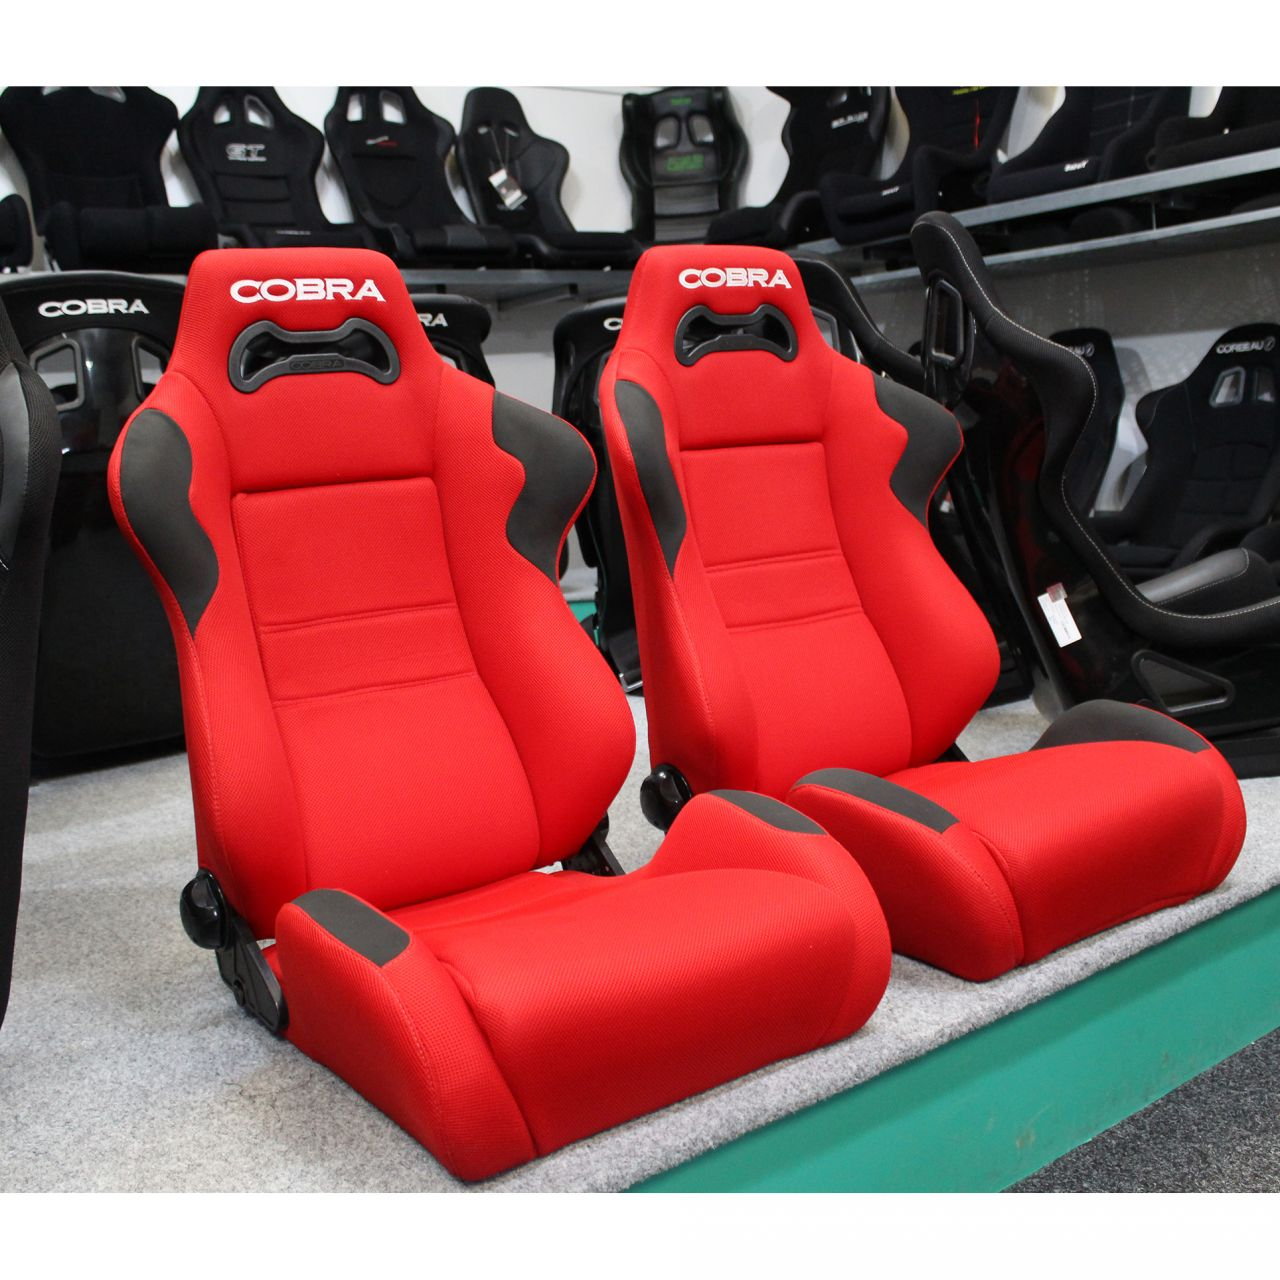 Cobra Sport Car Recliner